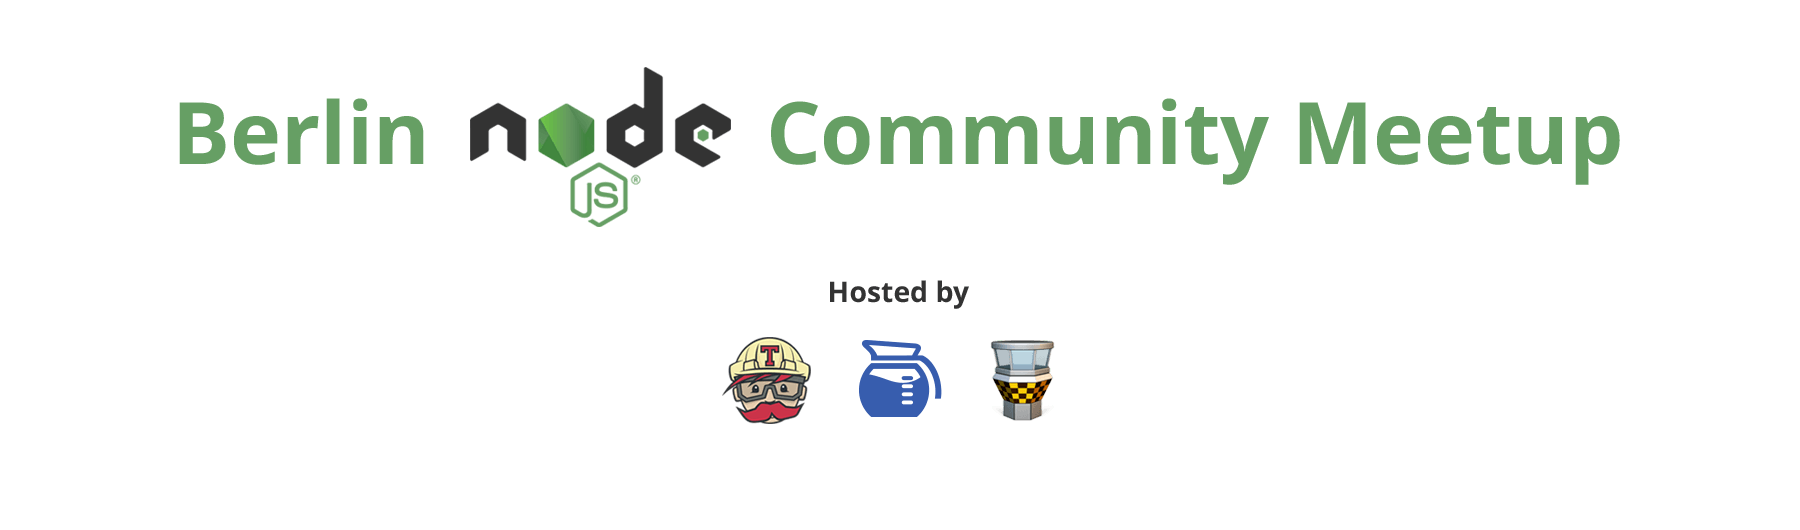 Berlin Node.js Community Meetup Hosted By Travis CI, Opbeat, and Git Tower